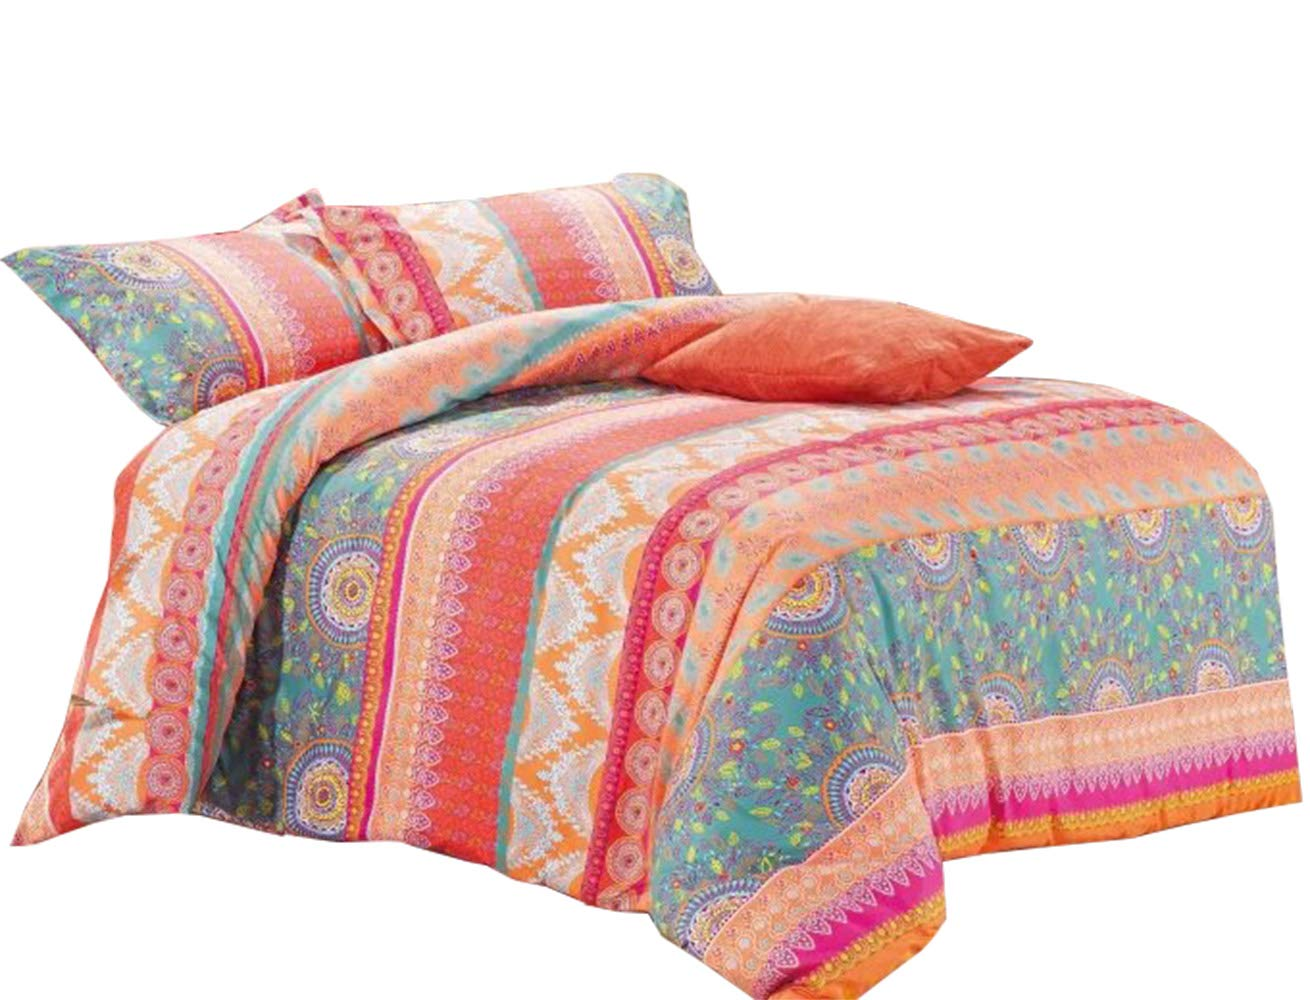 CDM product Wake In Cloud - Bohemian Comforter Set, Orange Coral Boho Chic Mandala Pattern Printed, Soft Microfiber Bedding (3pcs, Twin Size) small thumbnail image